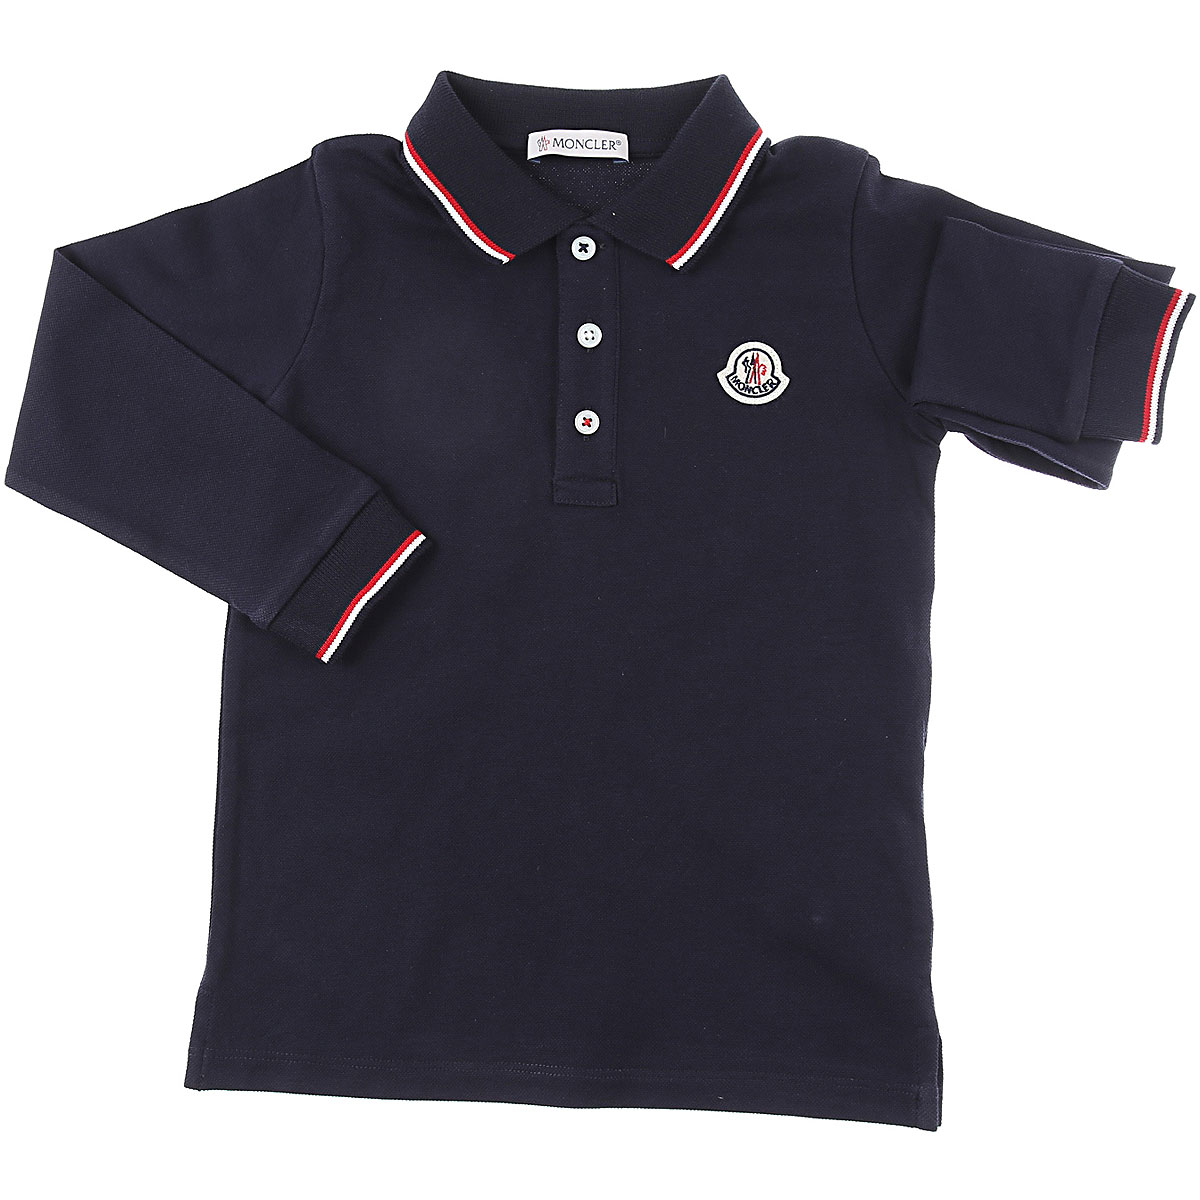 Moncler Baby Polo Shirt for Boys On Sale, Blue, Cotton, 2019, 12 M 24M